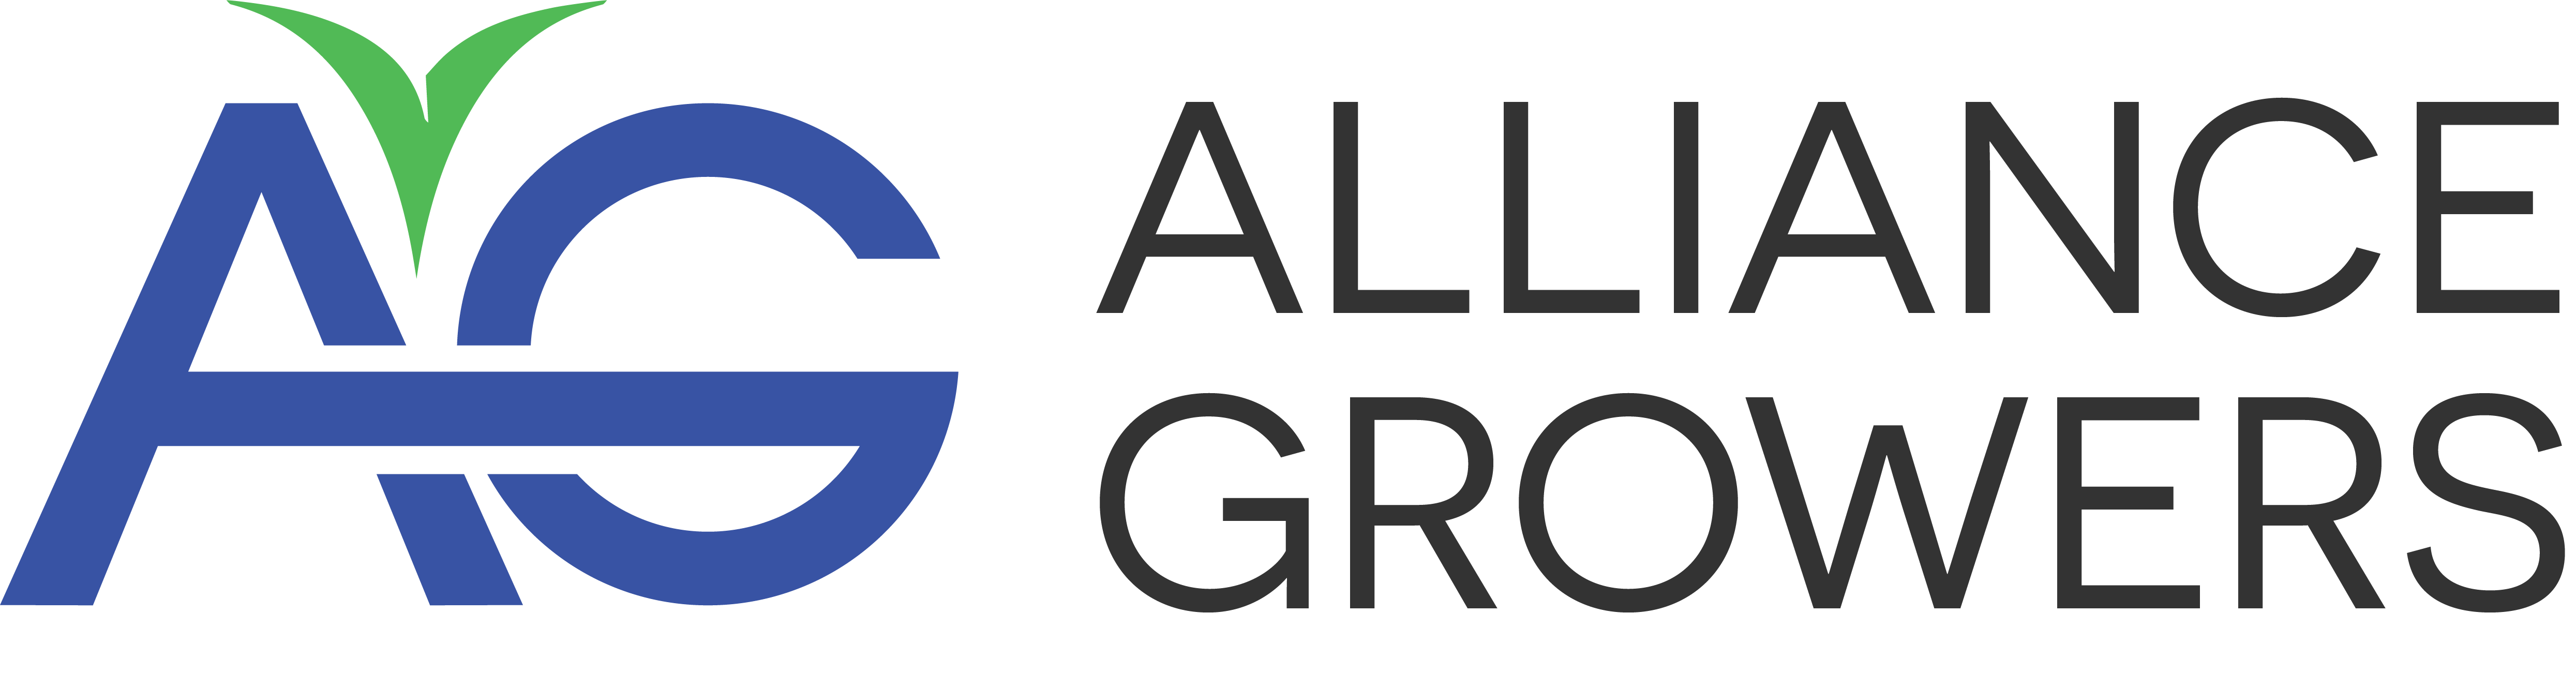 Alliance Growers Corp